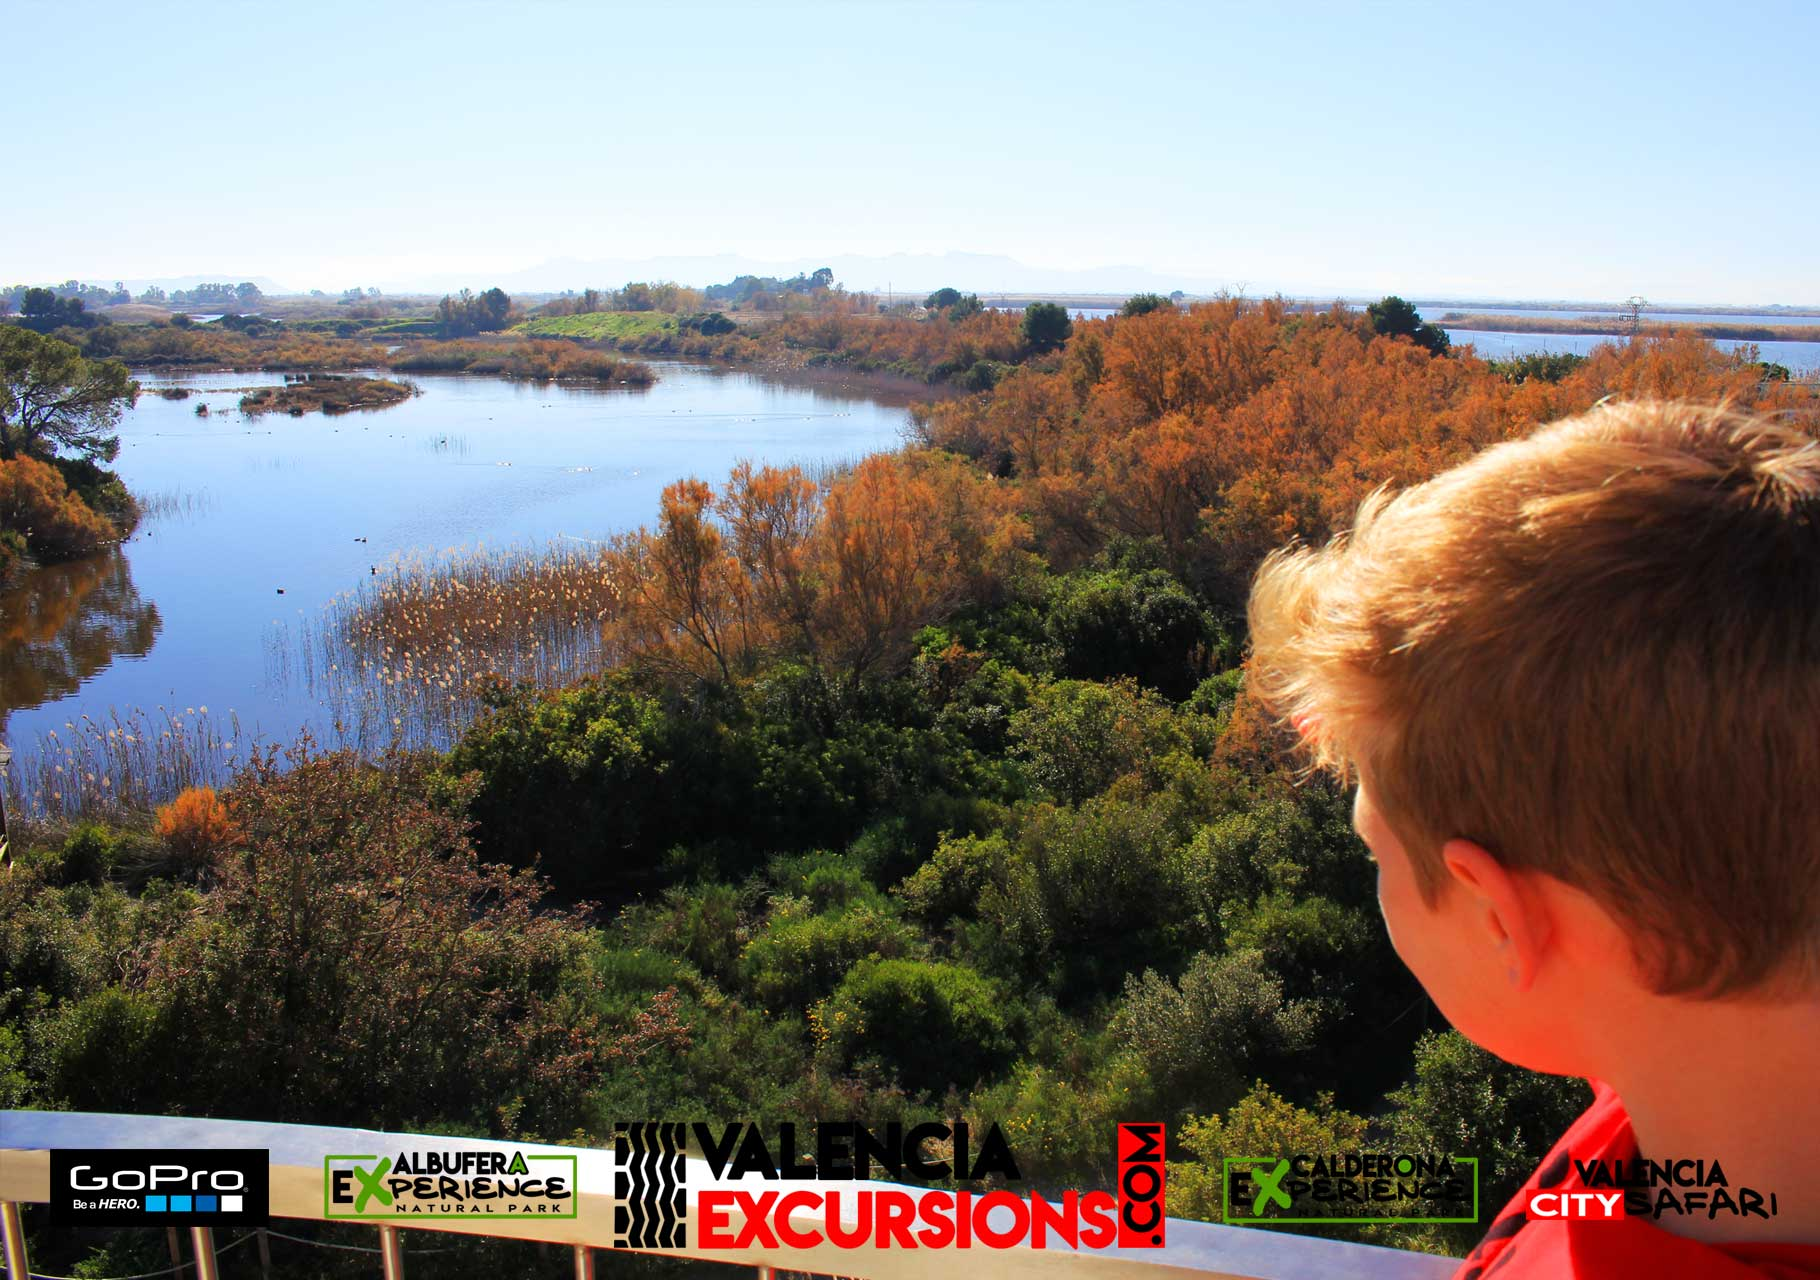 Albufera Sightseeing with Albufera Experience jeep tour. Discover L'Albufera driving a jeep and enjoying a boat trip included www.valenciaexcursions.com